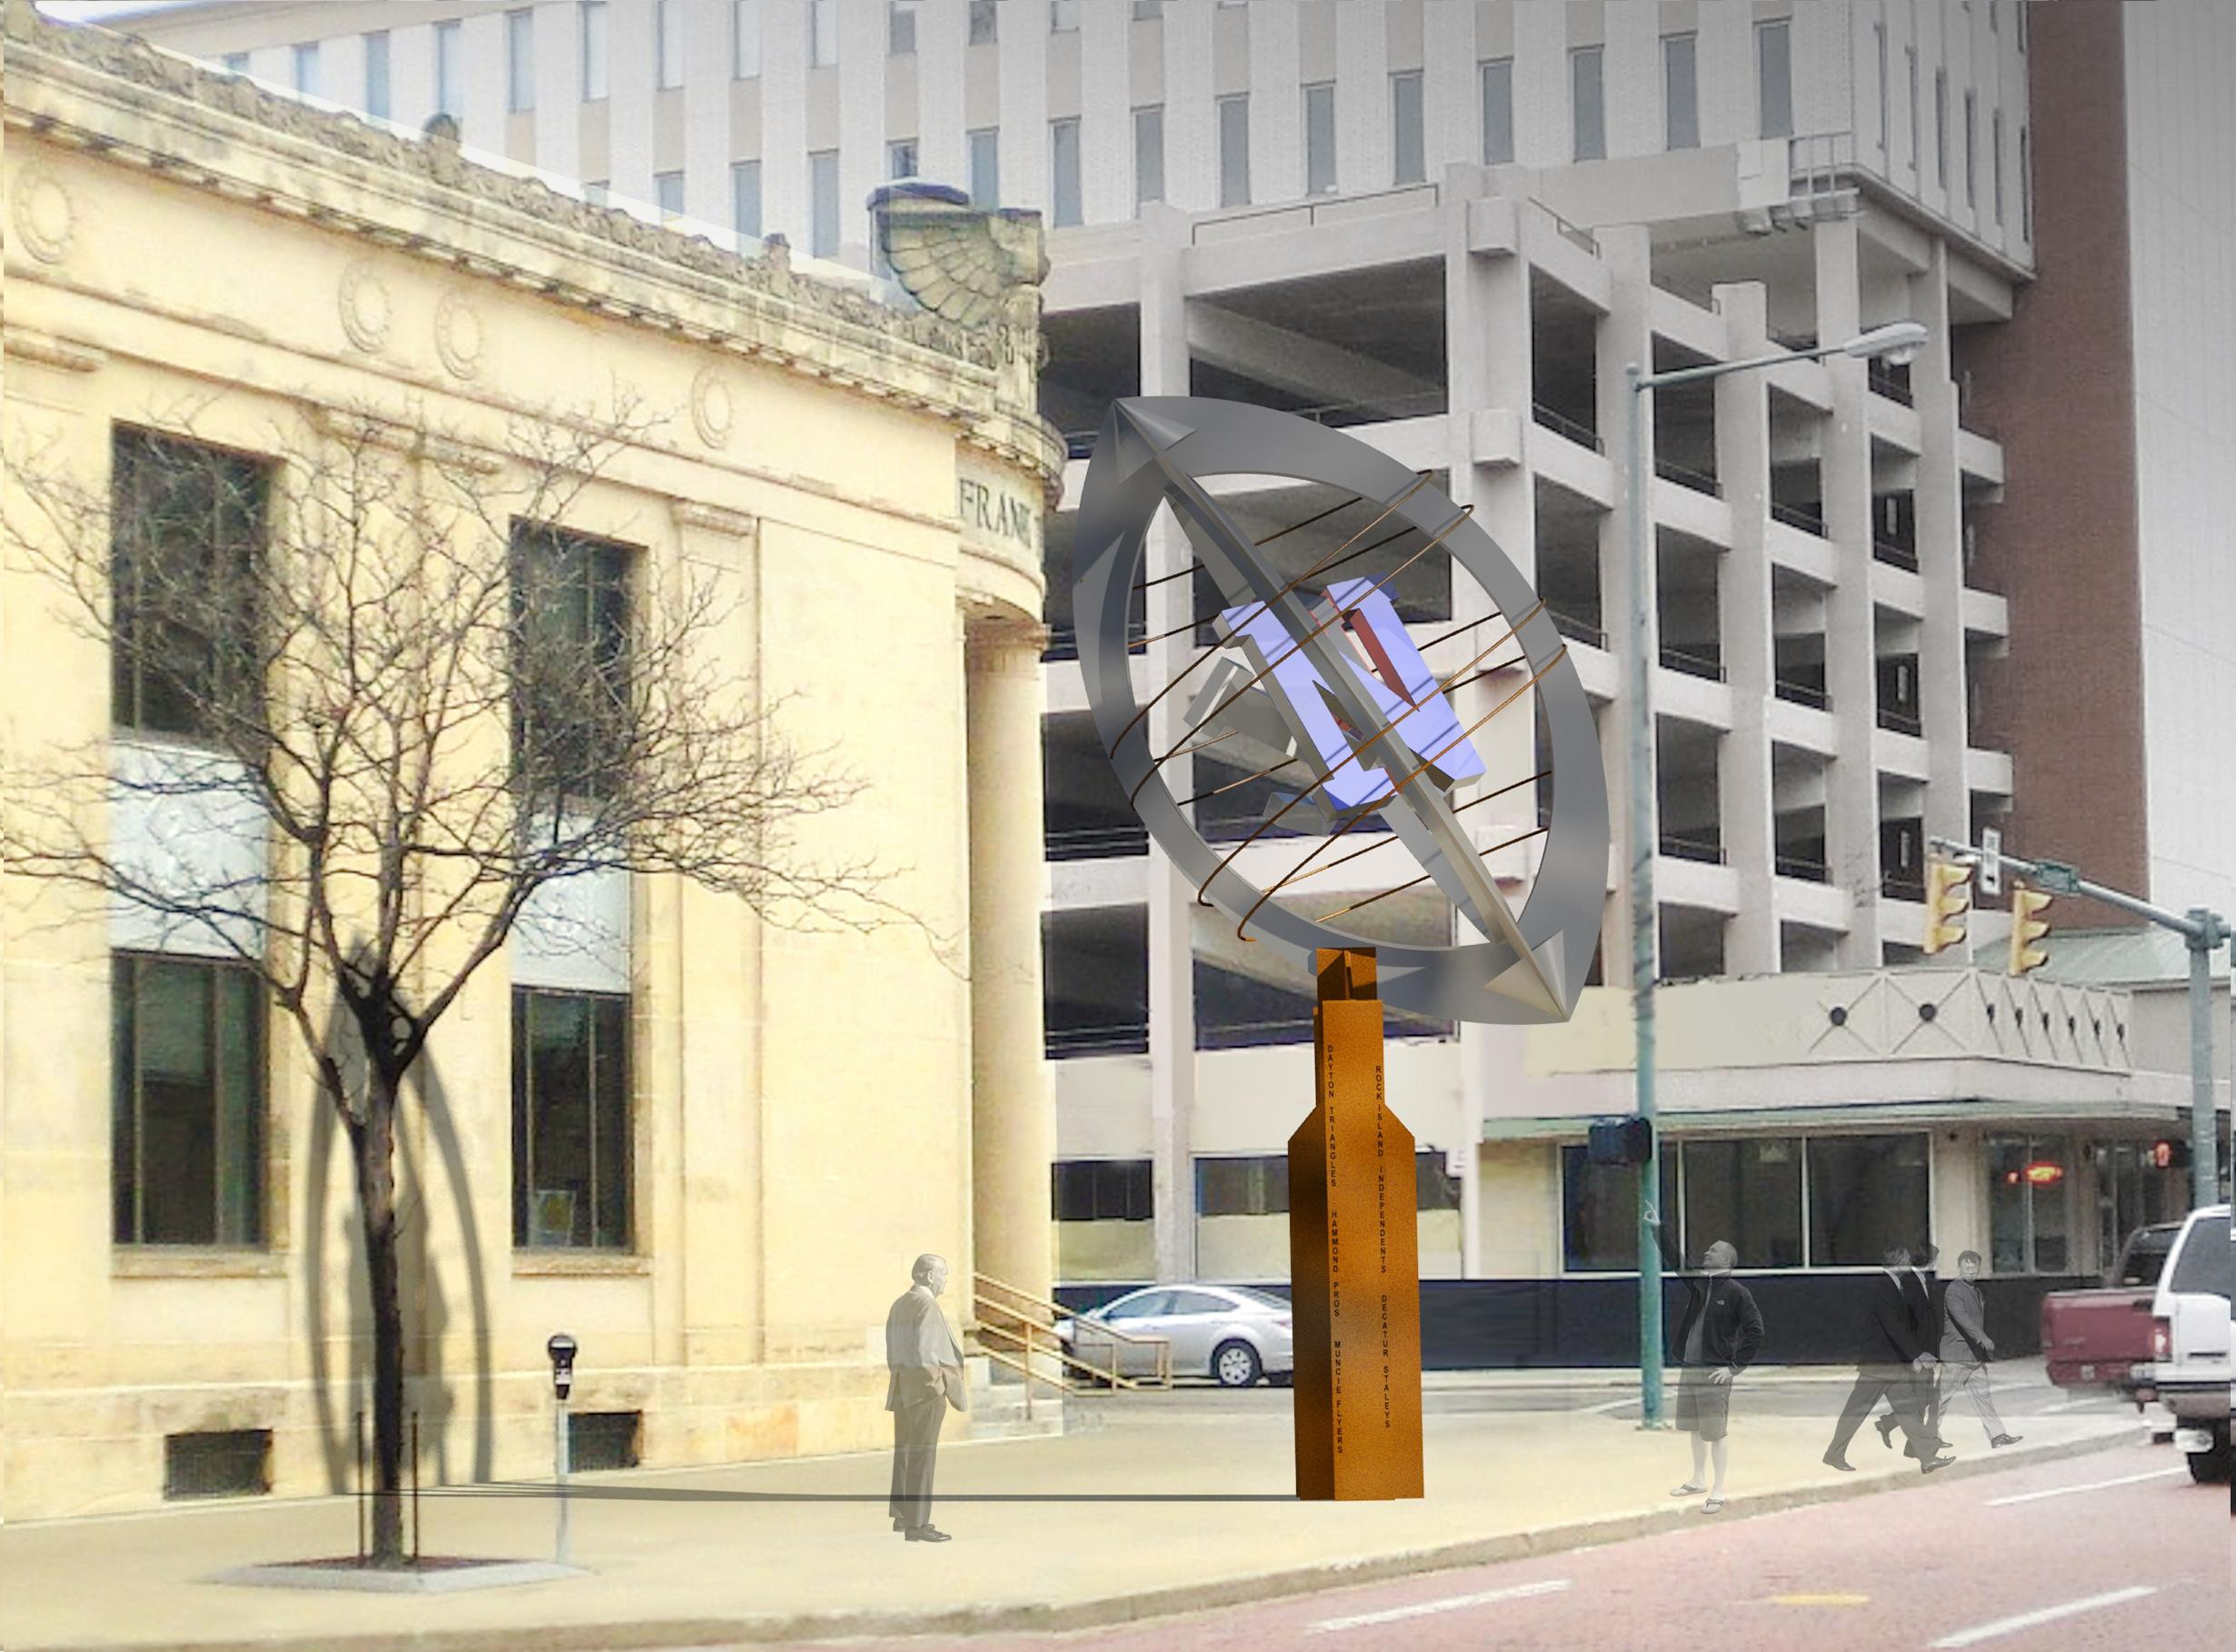 canton_ohio_birth of the nfl_michael clapper_public art services_j grant projects_6.jpg